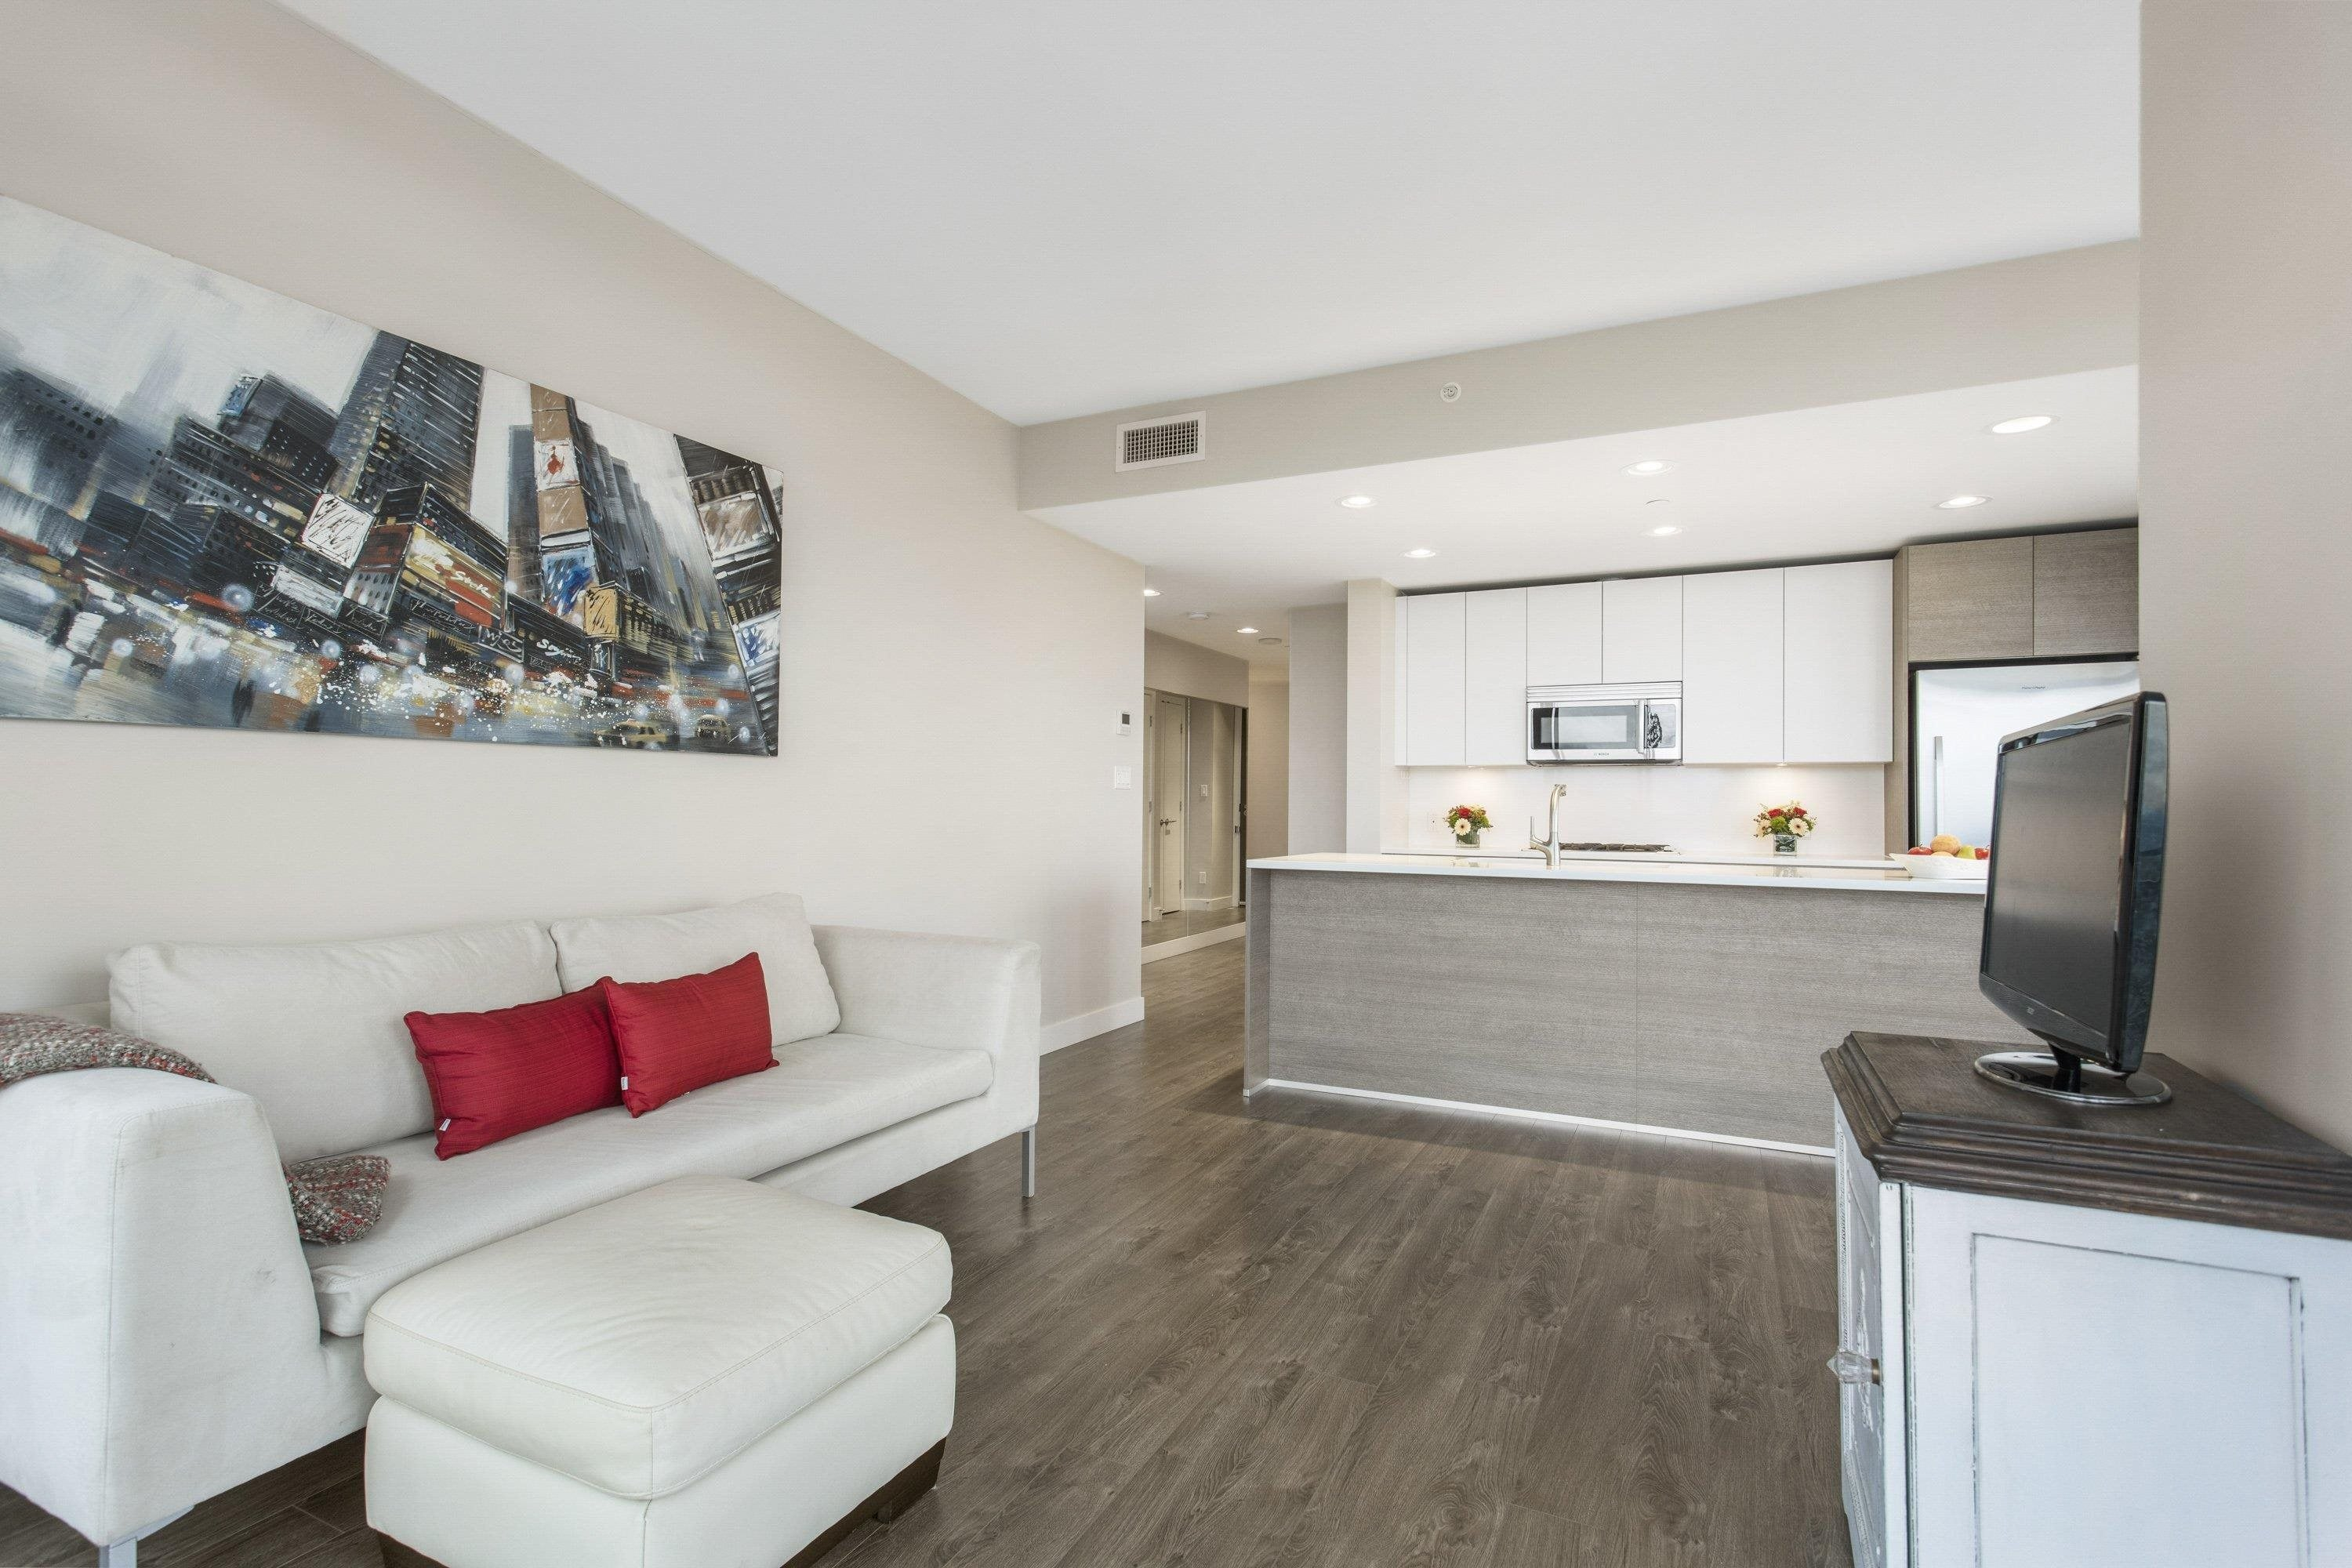 4002 2008 ROSSER AVENUE - Brentwood Park Apartment/Condo for sale, 2 Bedrooms (R2625548) - #17